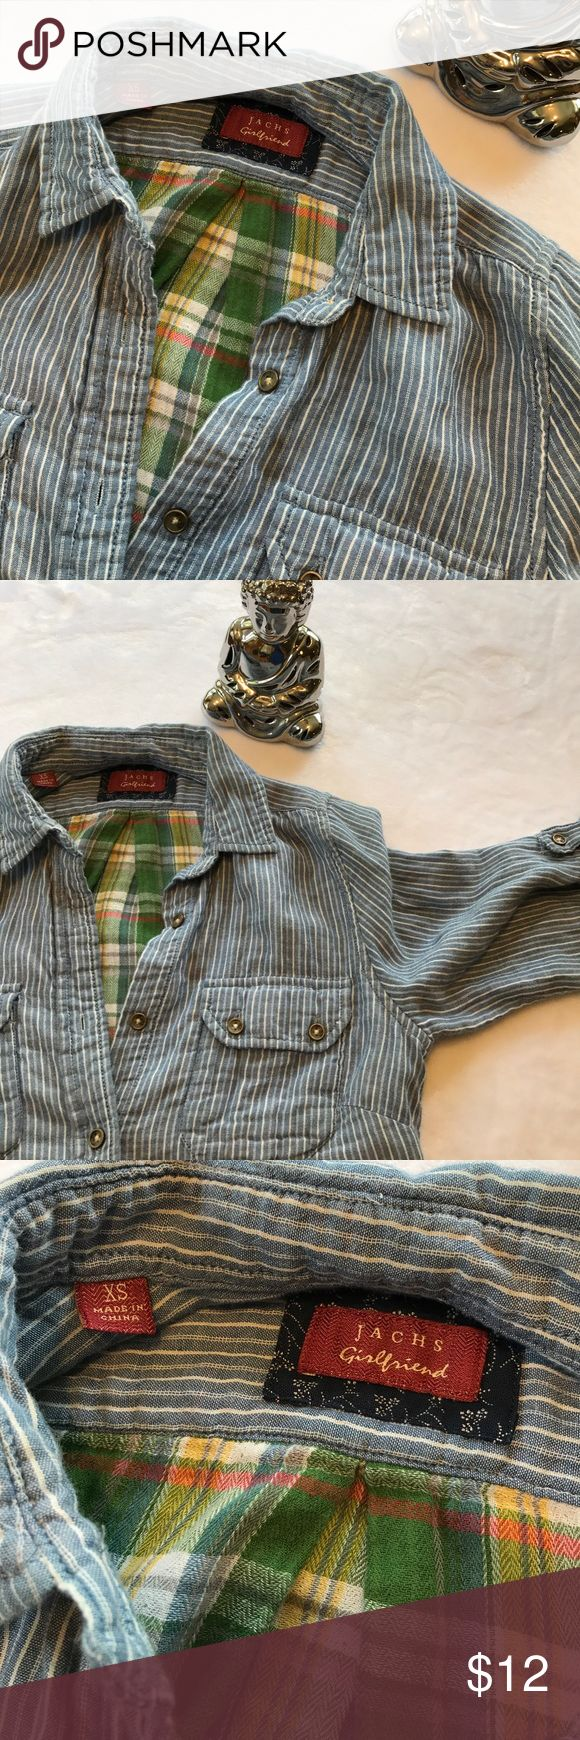 Jachs Girlfriend blue stripe green plaid flannel Jachs Girlfriend blue stripe green plaid flannel, size XS. So soft! Roll tab sleeves show green plaid flannel lining when rolled up. Cotton. Measures: armpit to armpit: 17.5  inches. Sleeve: 23 inches. Length: top collar to front hem: 24 inches; to back hem: 27 inches. Great condition and Great for fall! Jachs Girlfriend Tops Button Down Shirts